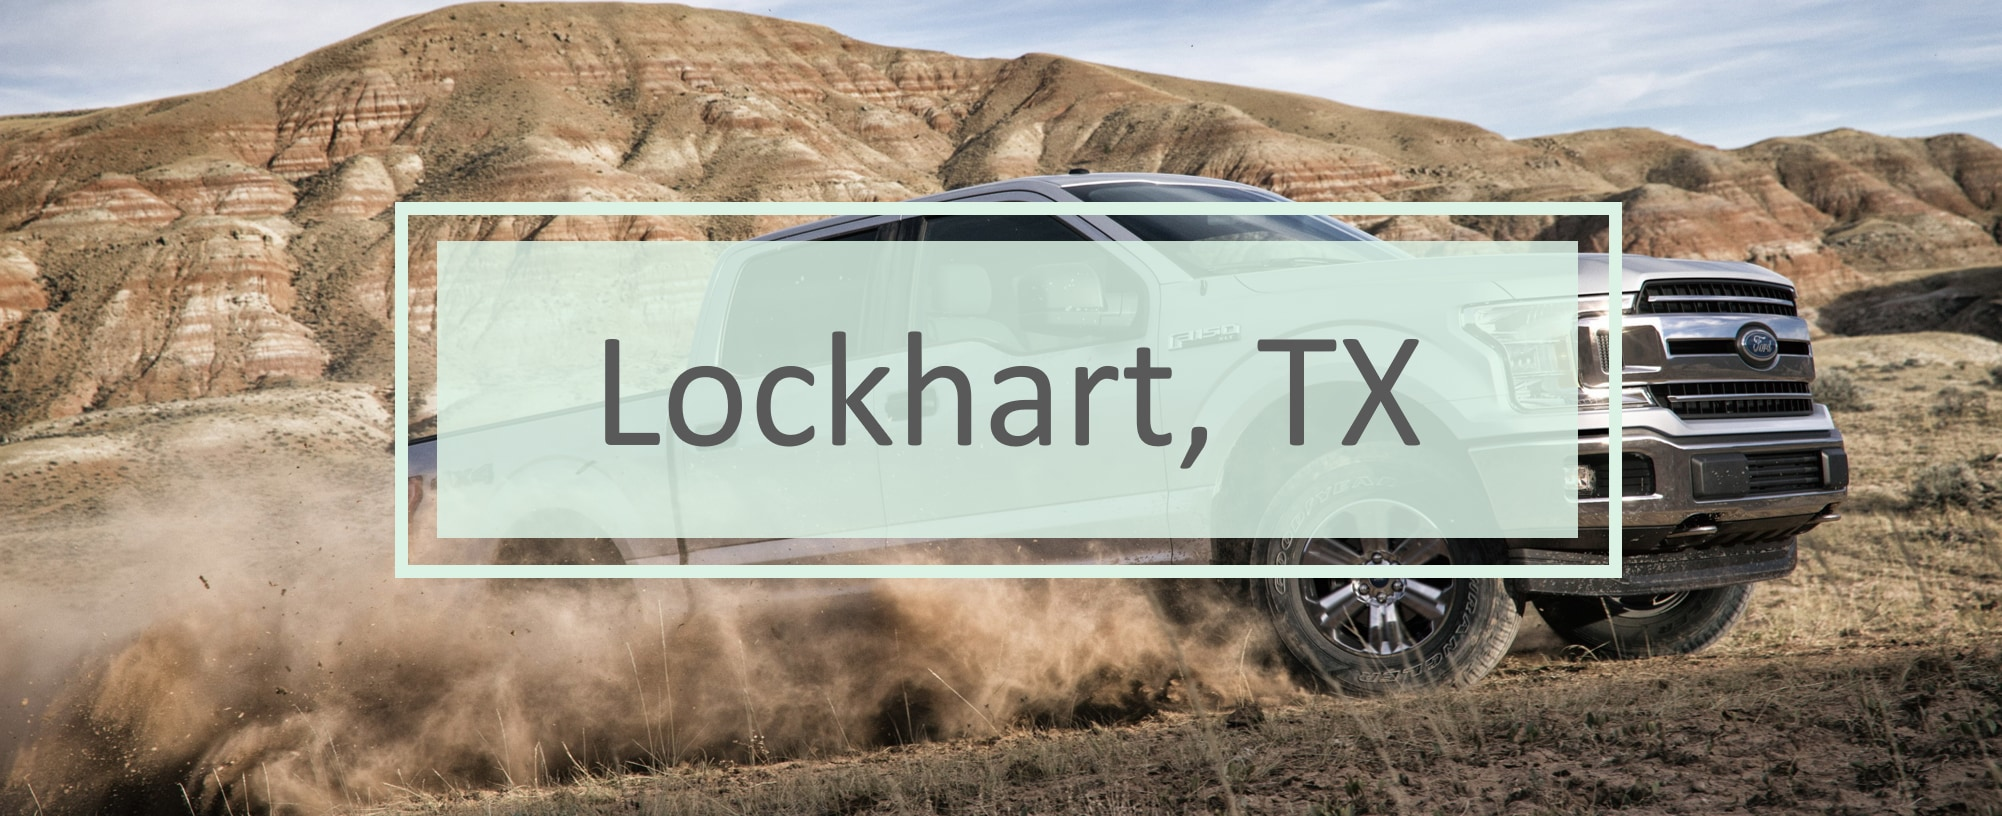 Griffith Ford Seguin >> Lockhart, TX | Griffith Ford Seguin